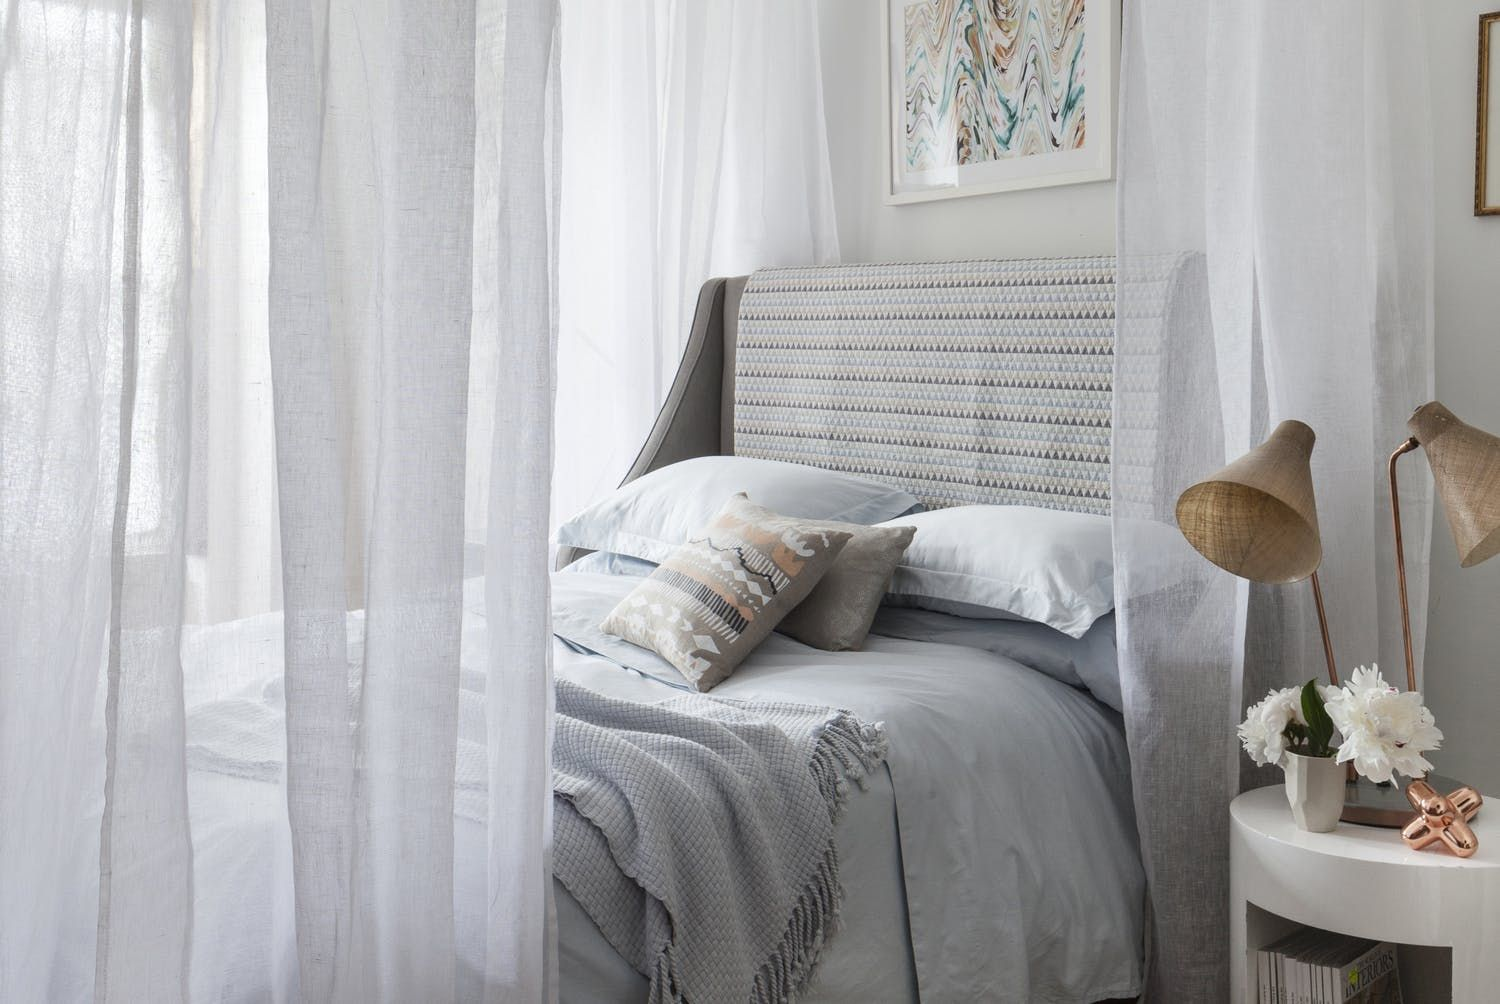 Bed against window with curtains  super stylish spacesaving diys every studio apartment needs